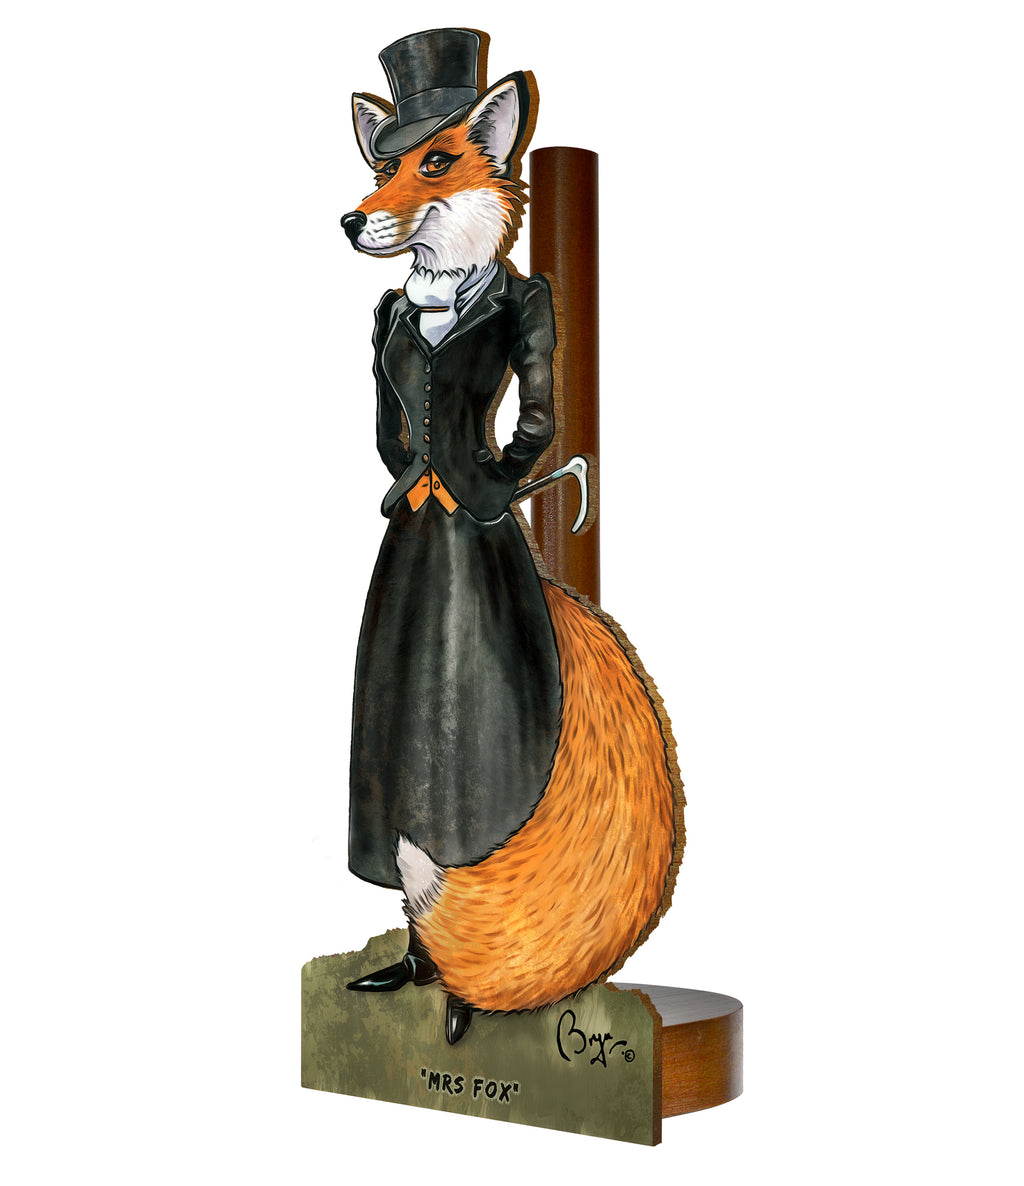 Mrs Fox (Bryn Parry ) - Printed Wood Toilet Roll / Kitchen Roll Holder.